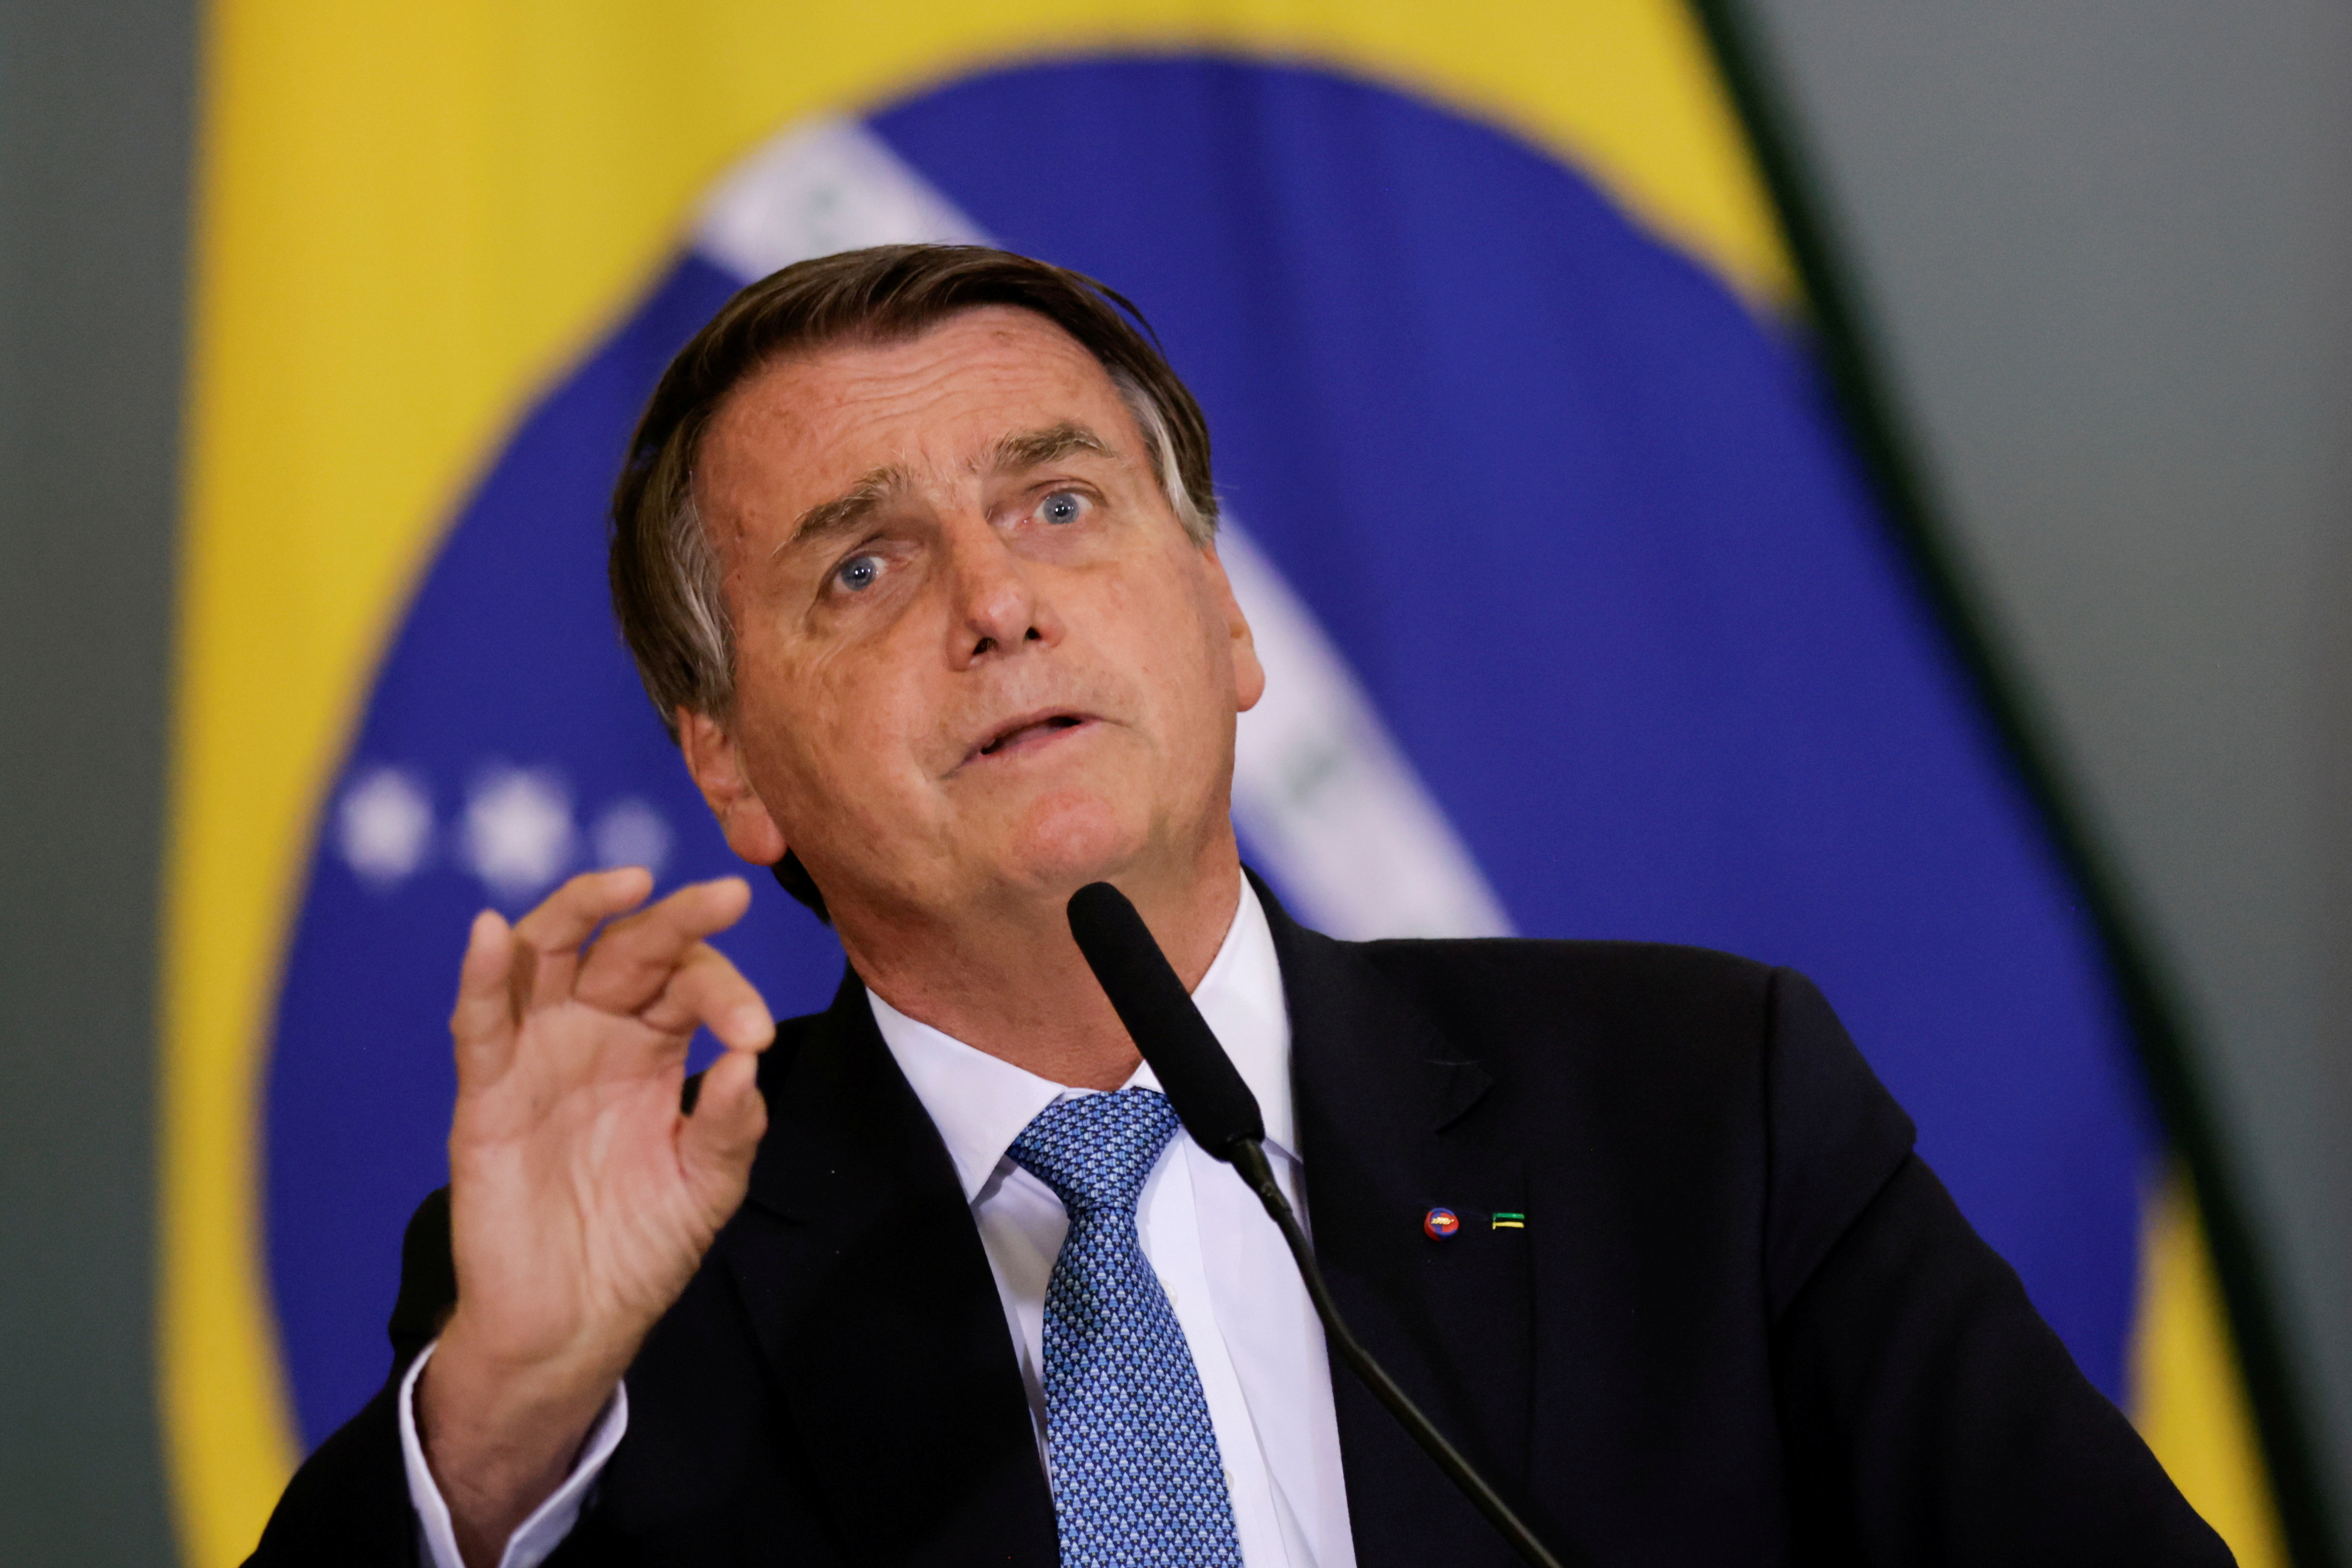 Brazil's President Jair Bolsonaro gestures during the ceremony for the Modernization of Occupational Health and Safety Regulations, at the Planalto Palace in Brasilia, Brazil October 7, 2021. REUTERS/Ueslei Marcelino